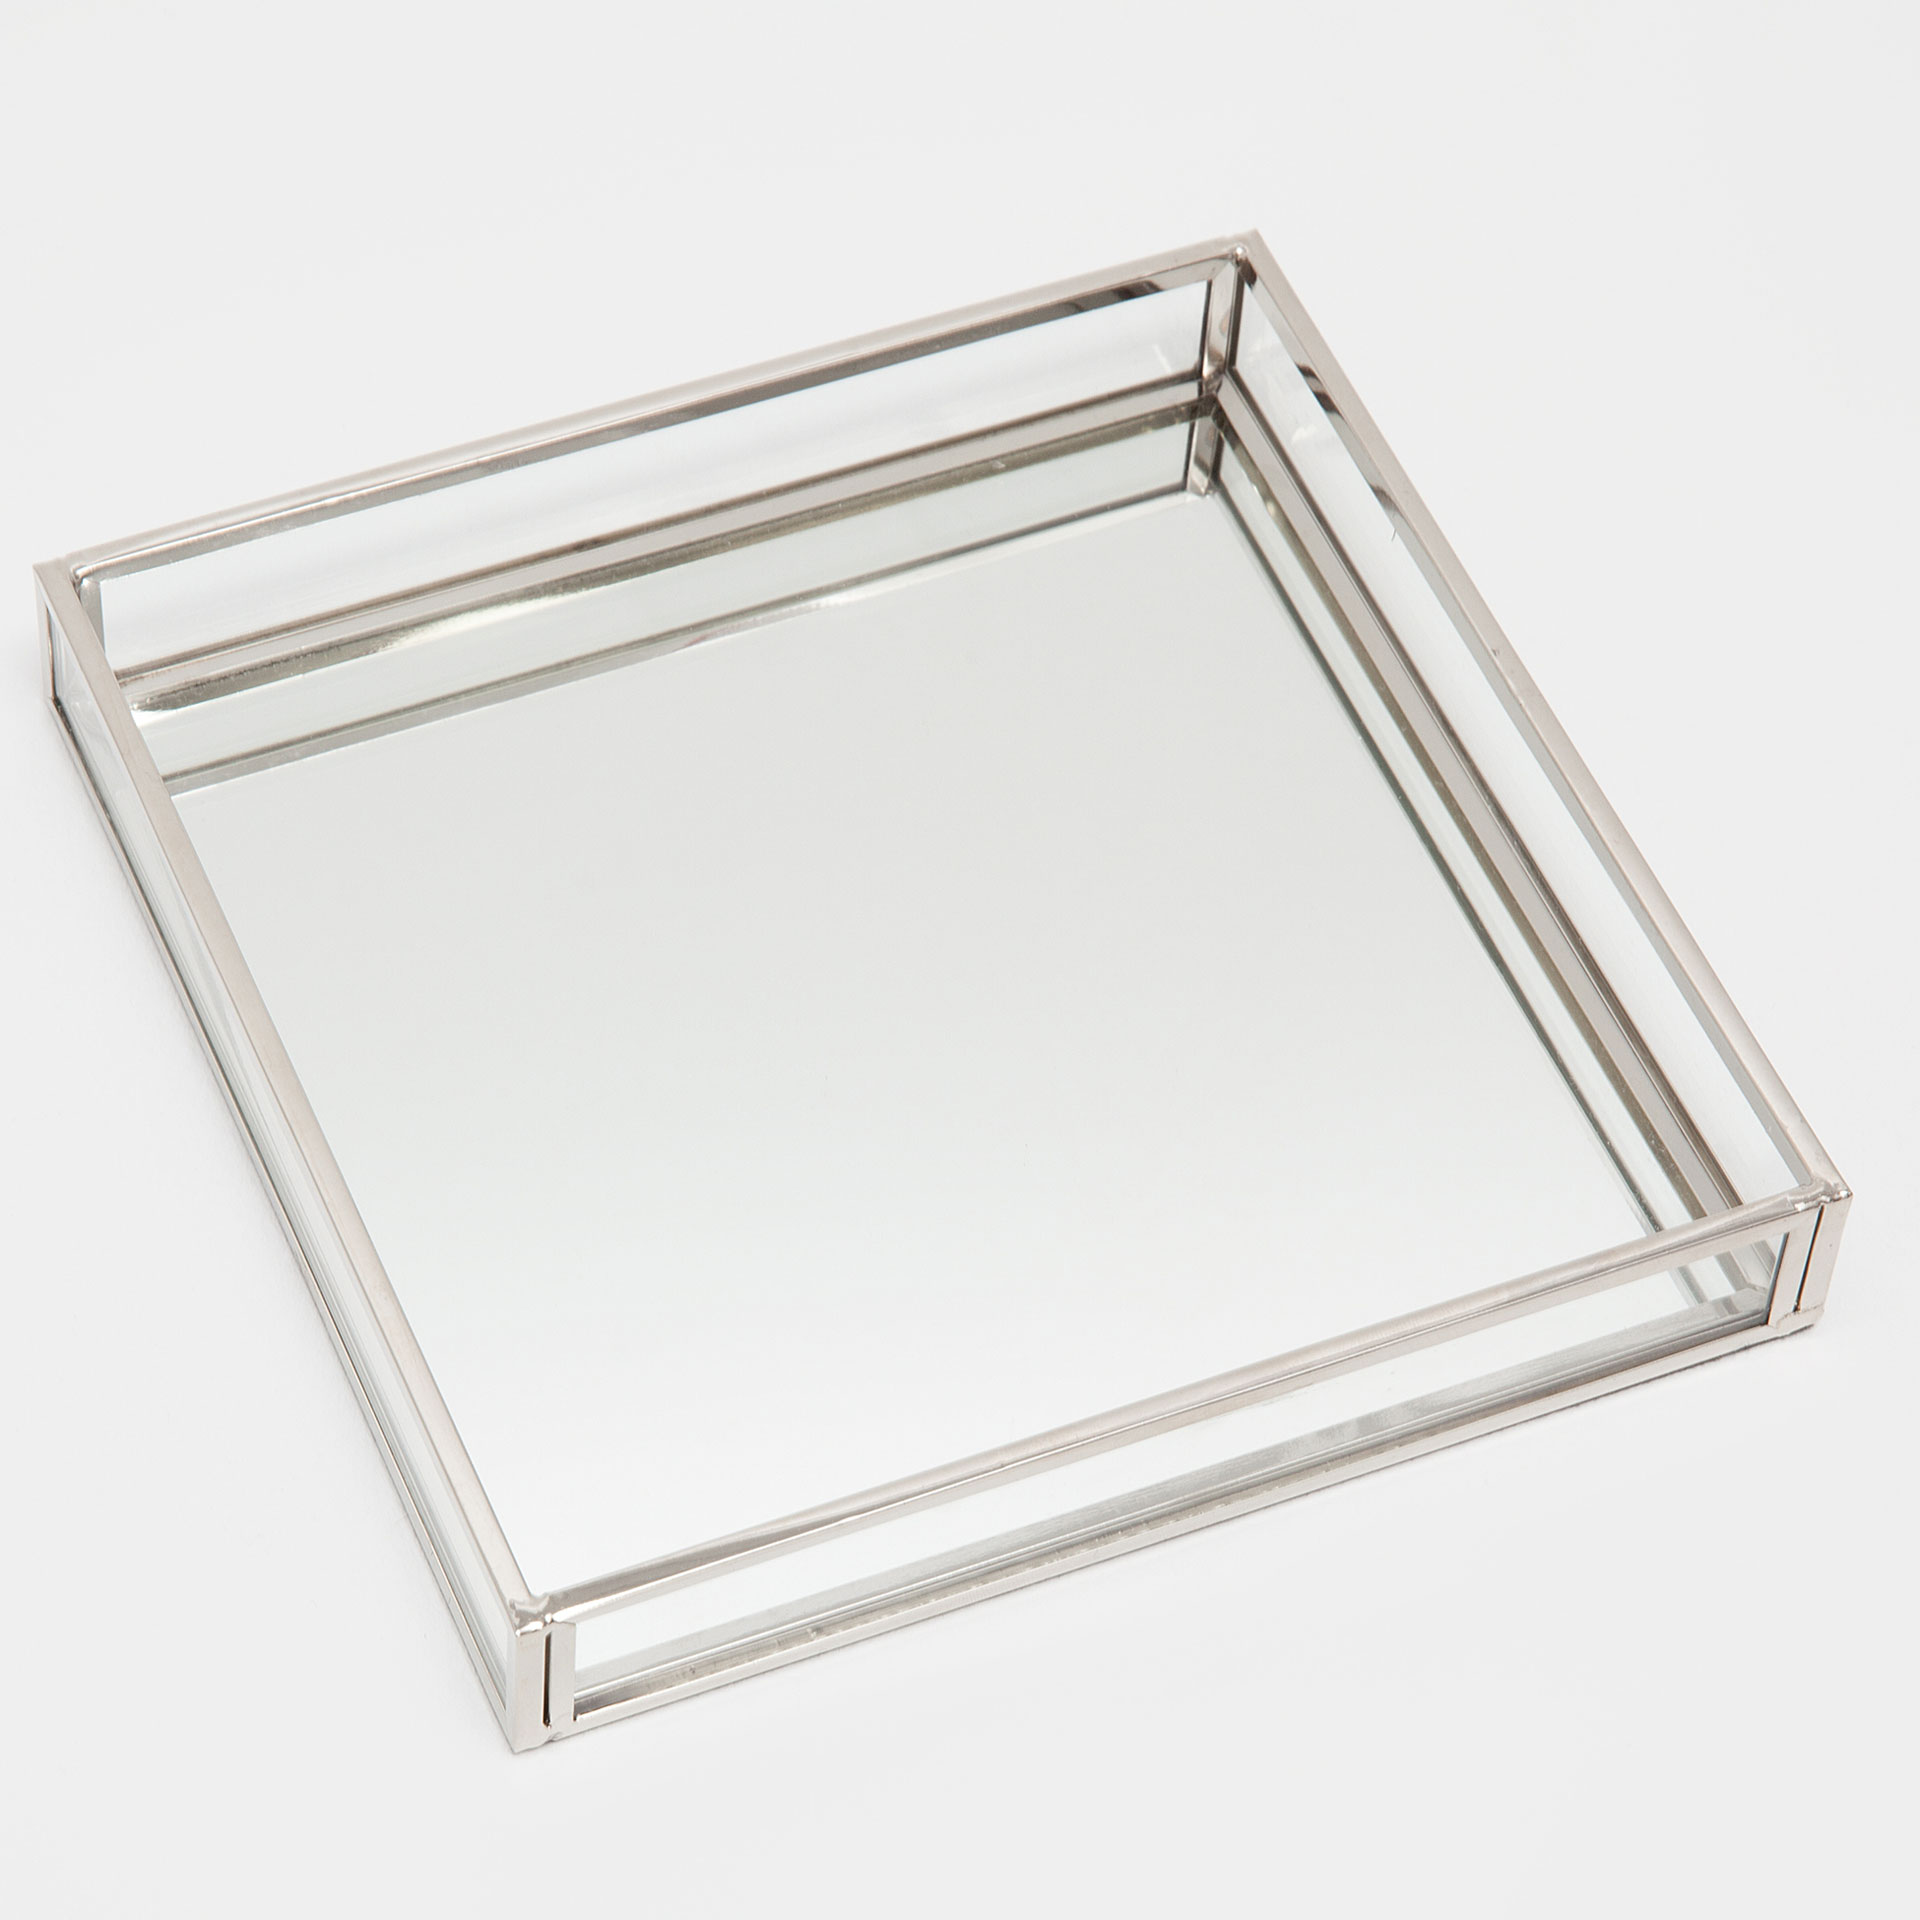 image 4 of the product silver metal mirror decorative tray - Decorative Tray